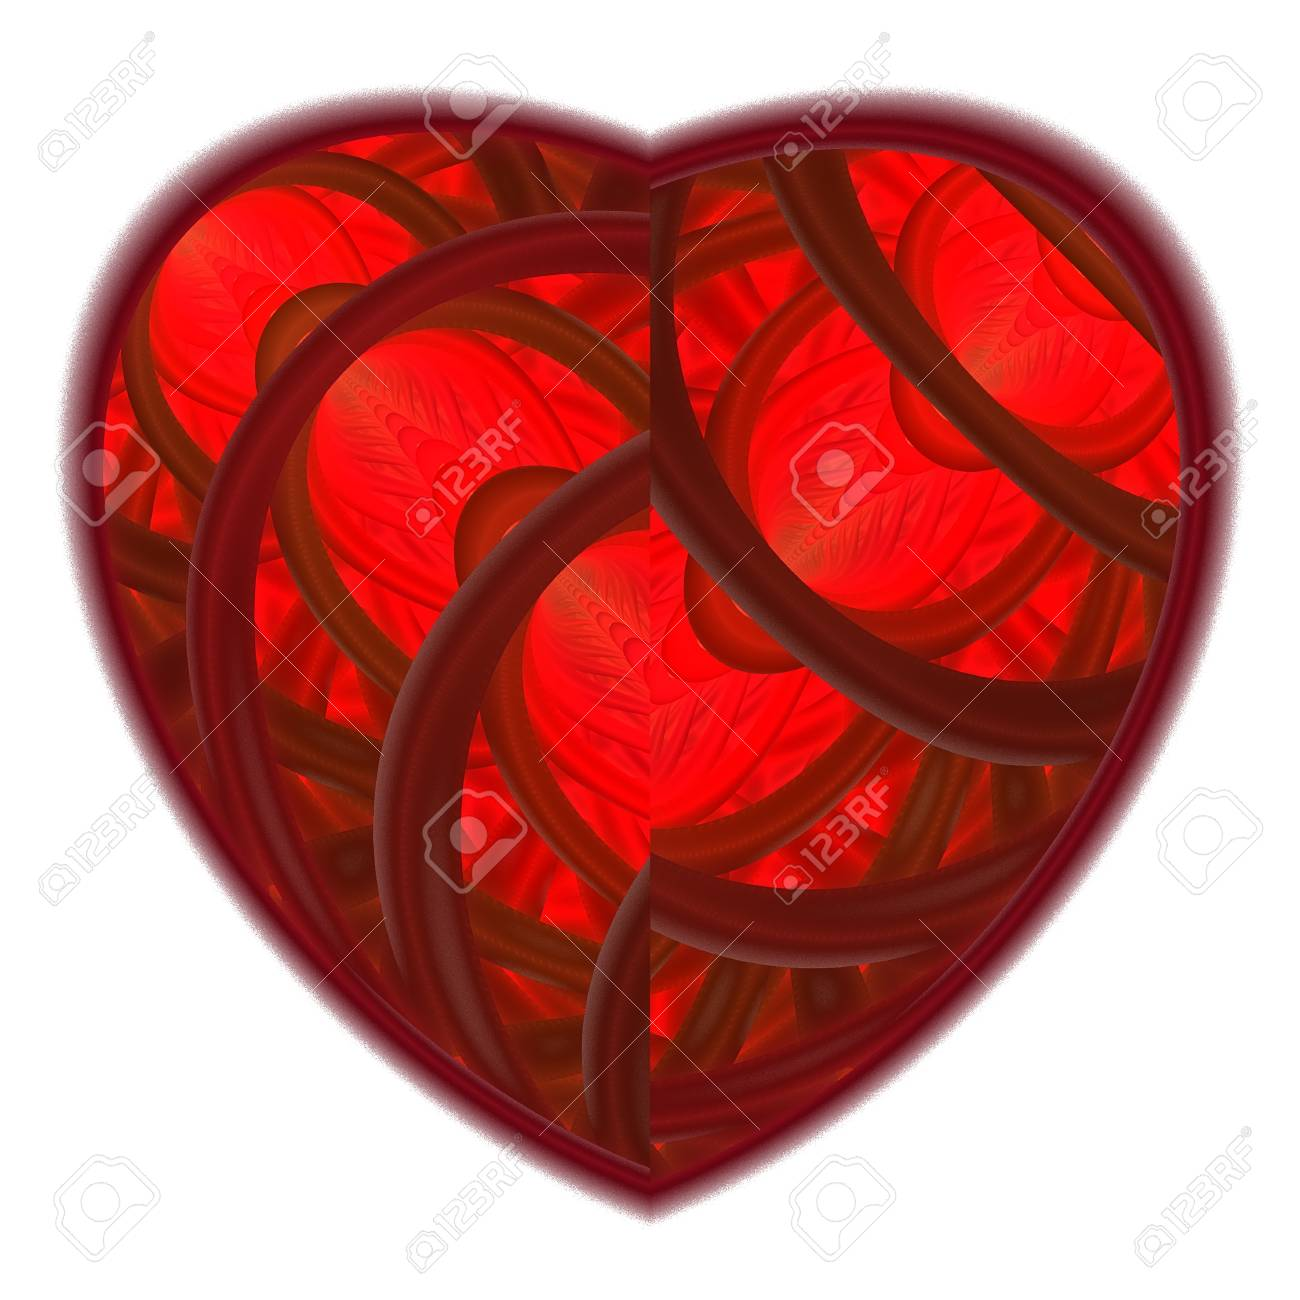 Red heart fractal on white background. Computer generated graphics. Stock Photo - 17604127